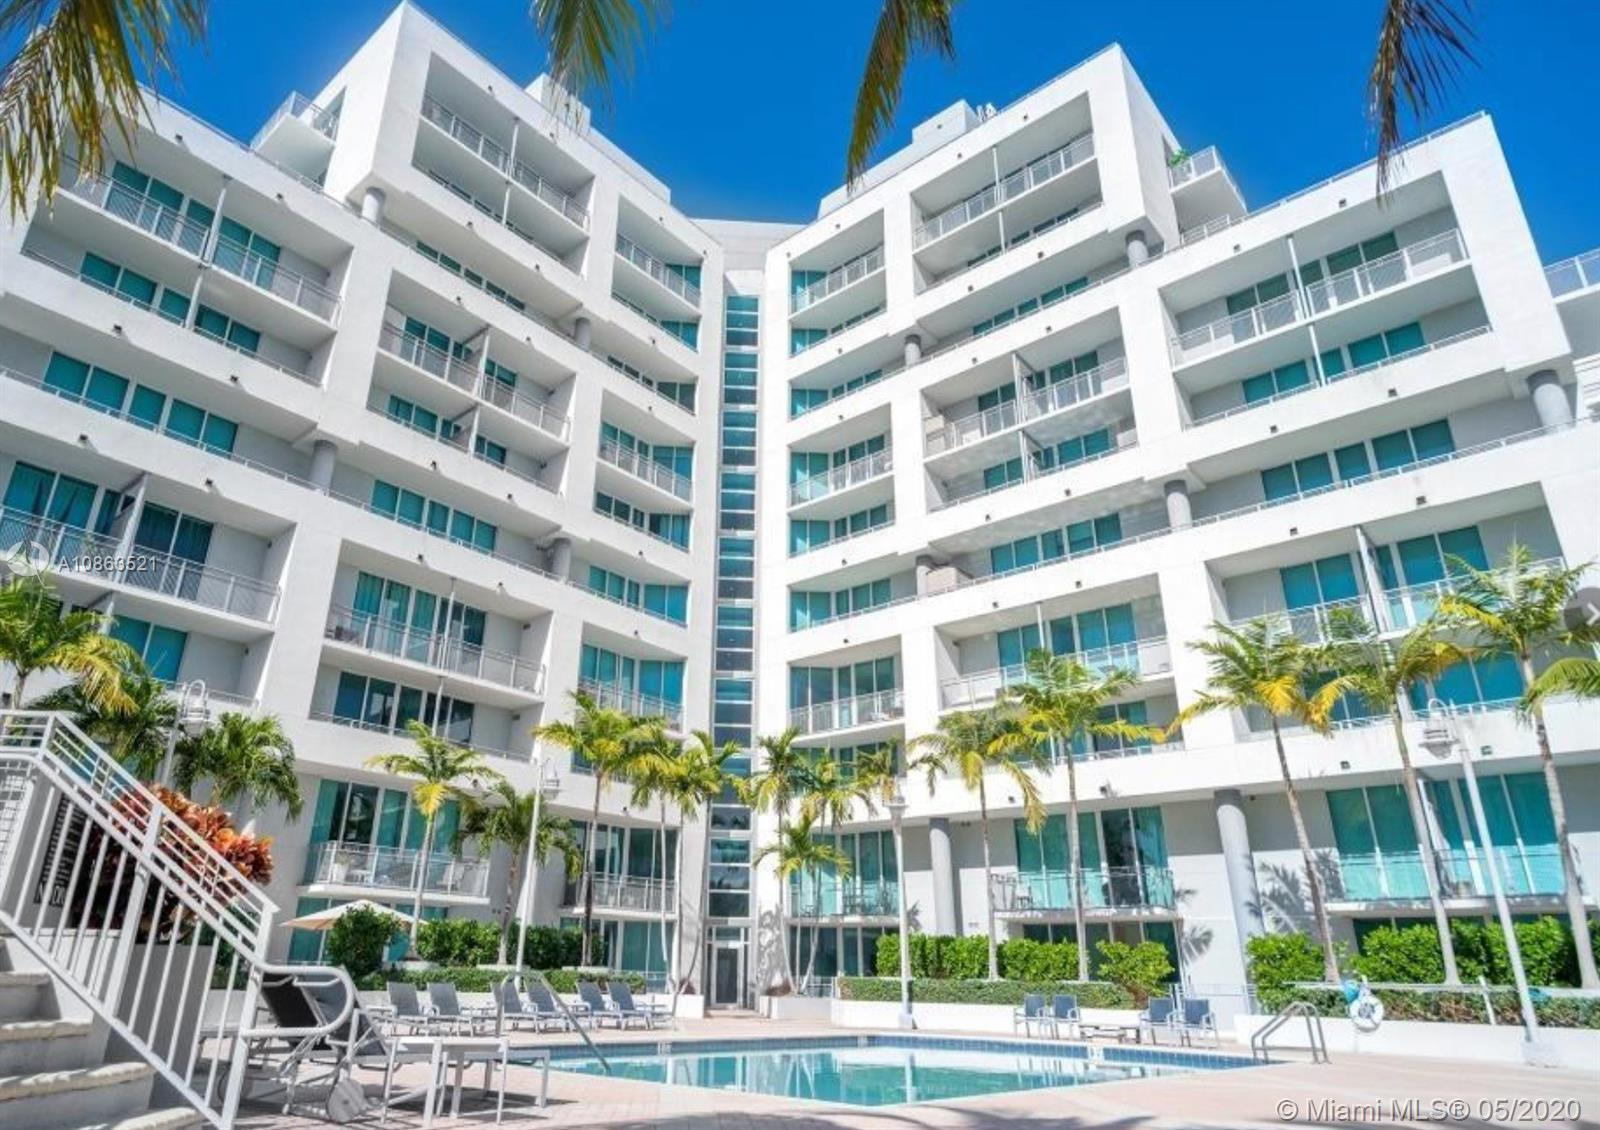 Excellent 2/2 in one of the most converted areas of Miami. A second parking space ($20,000 value) an